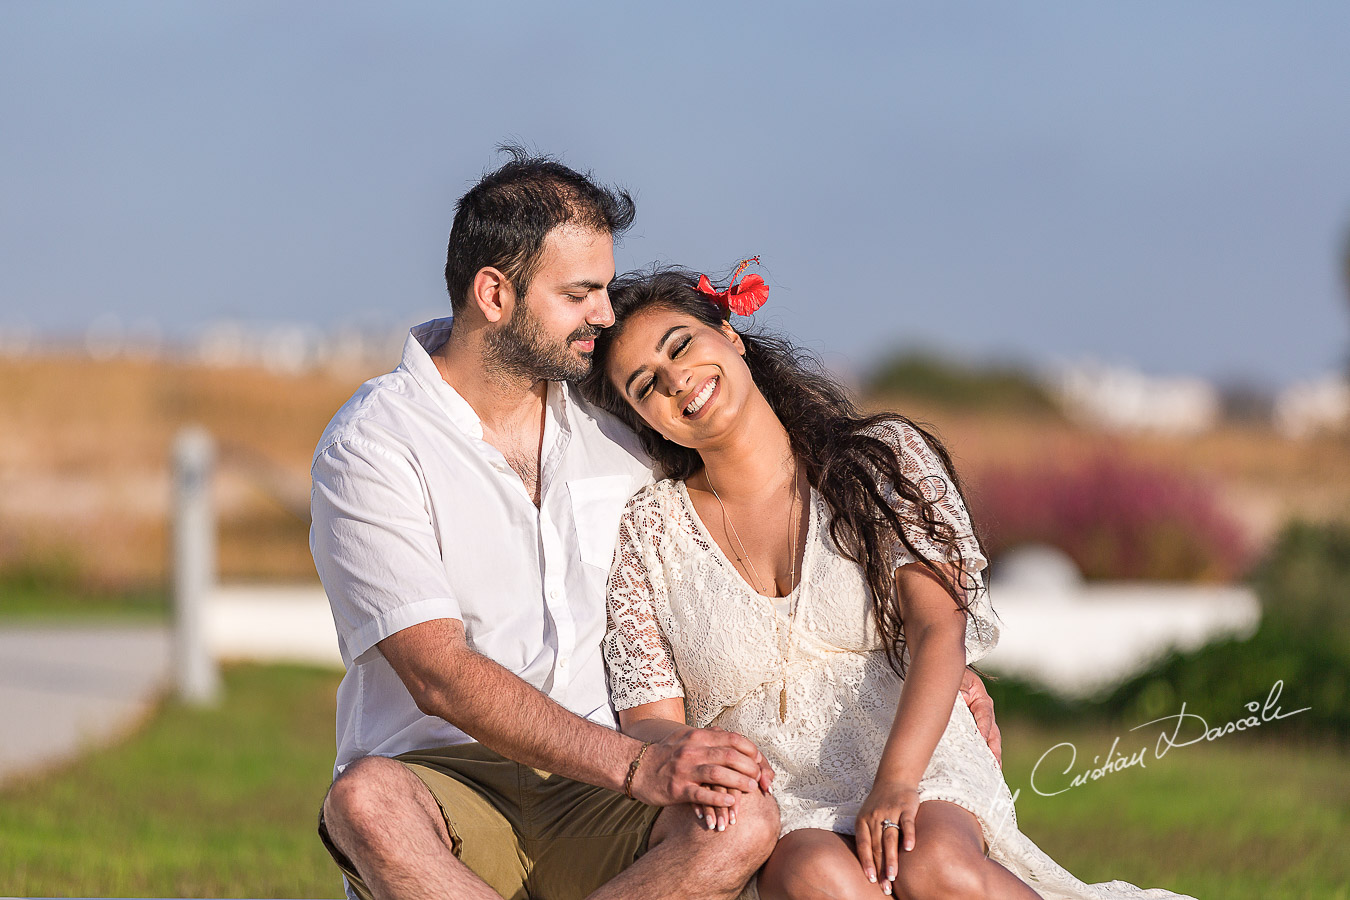 An anniversary couple photo shoot in paphos from sunset to sunrise